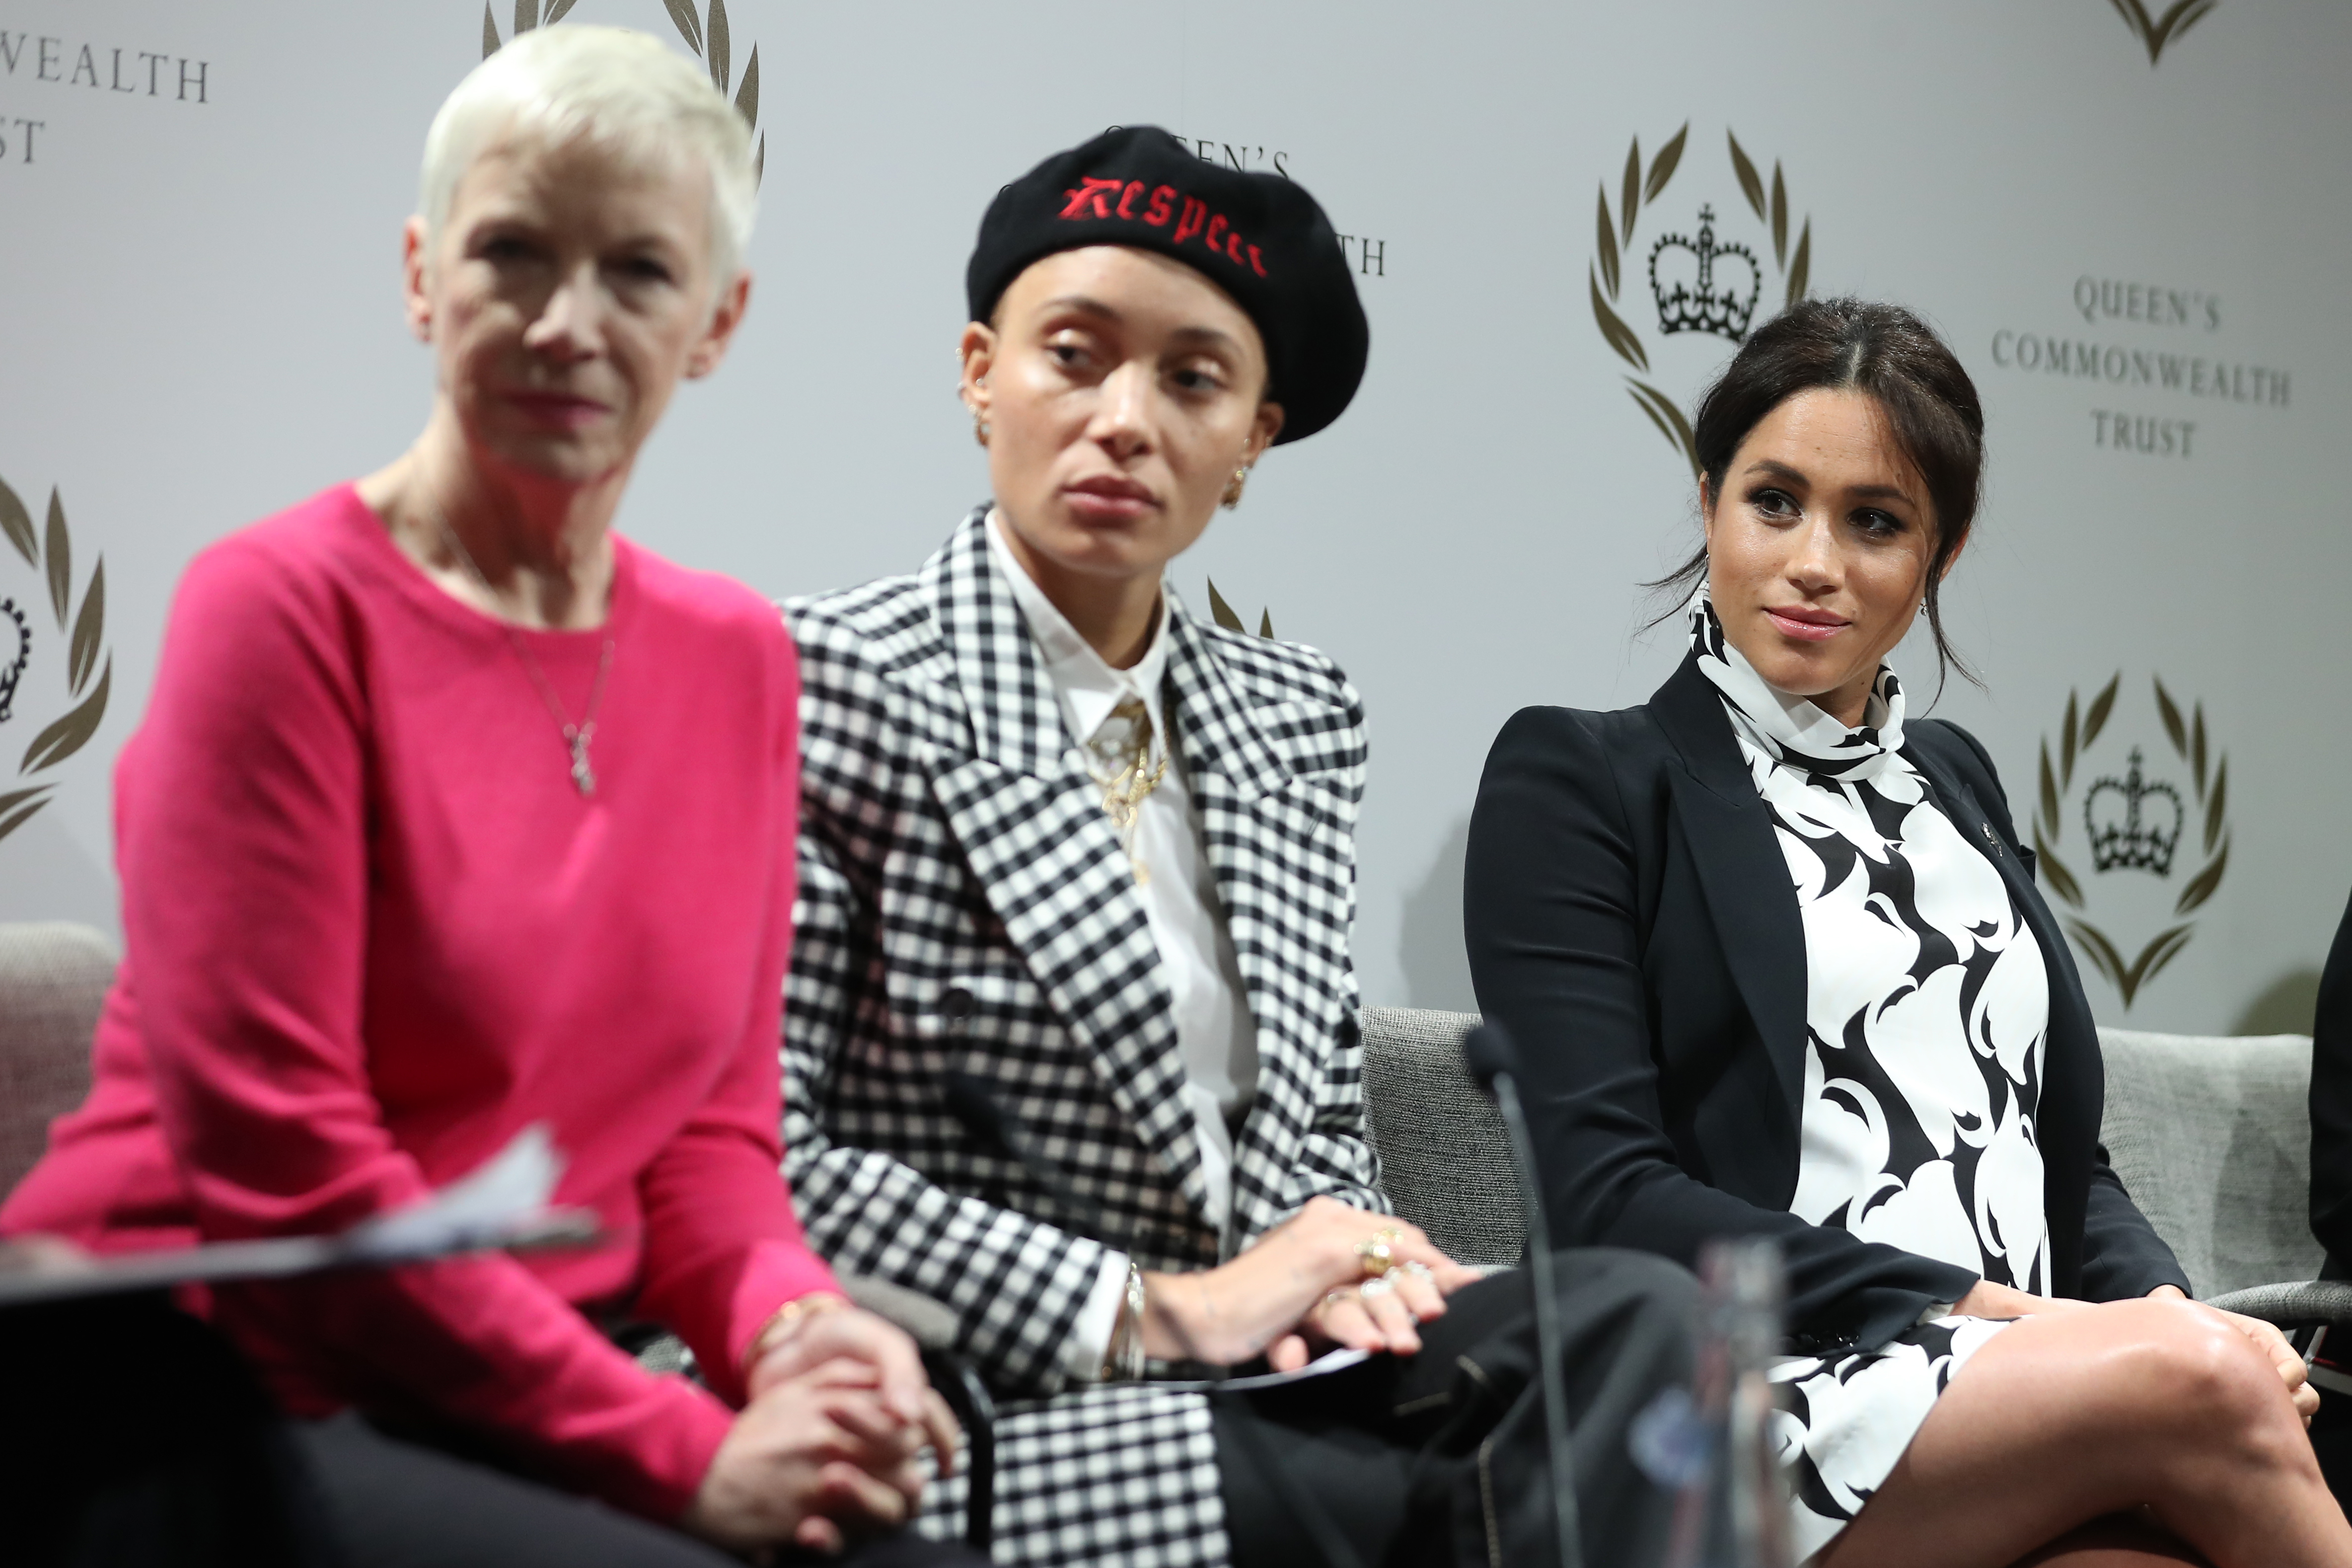 British singer Annie Lennox, British model Adwoa Aboah and Meghan, Duchess of Sussex, attend a panel discussion to mark International Women's Day in London, England.